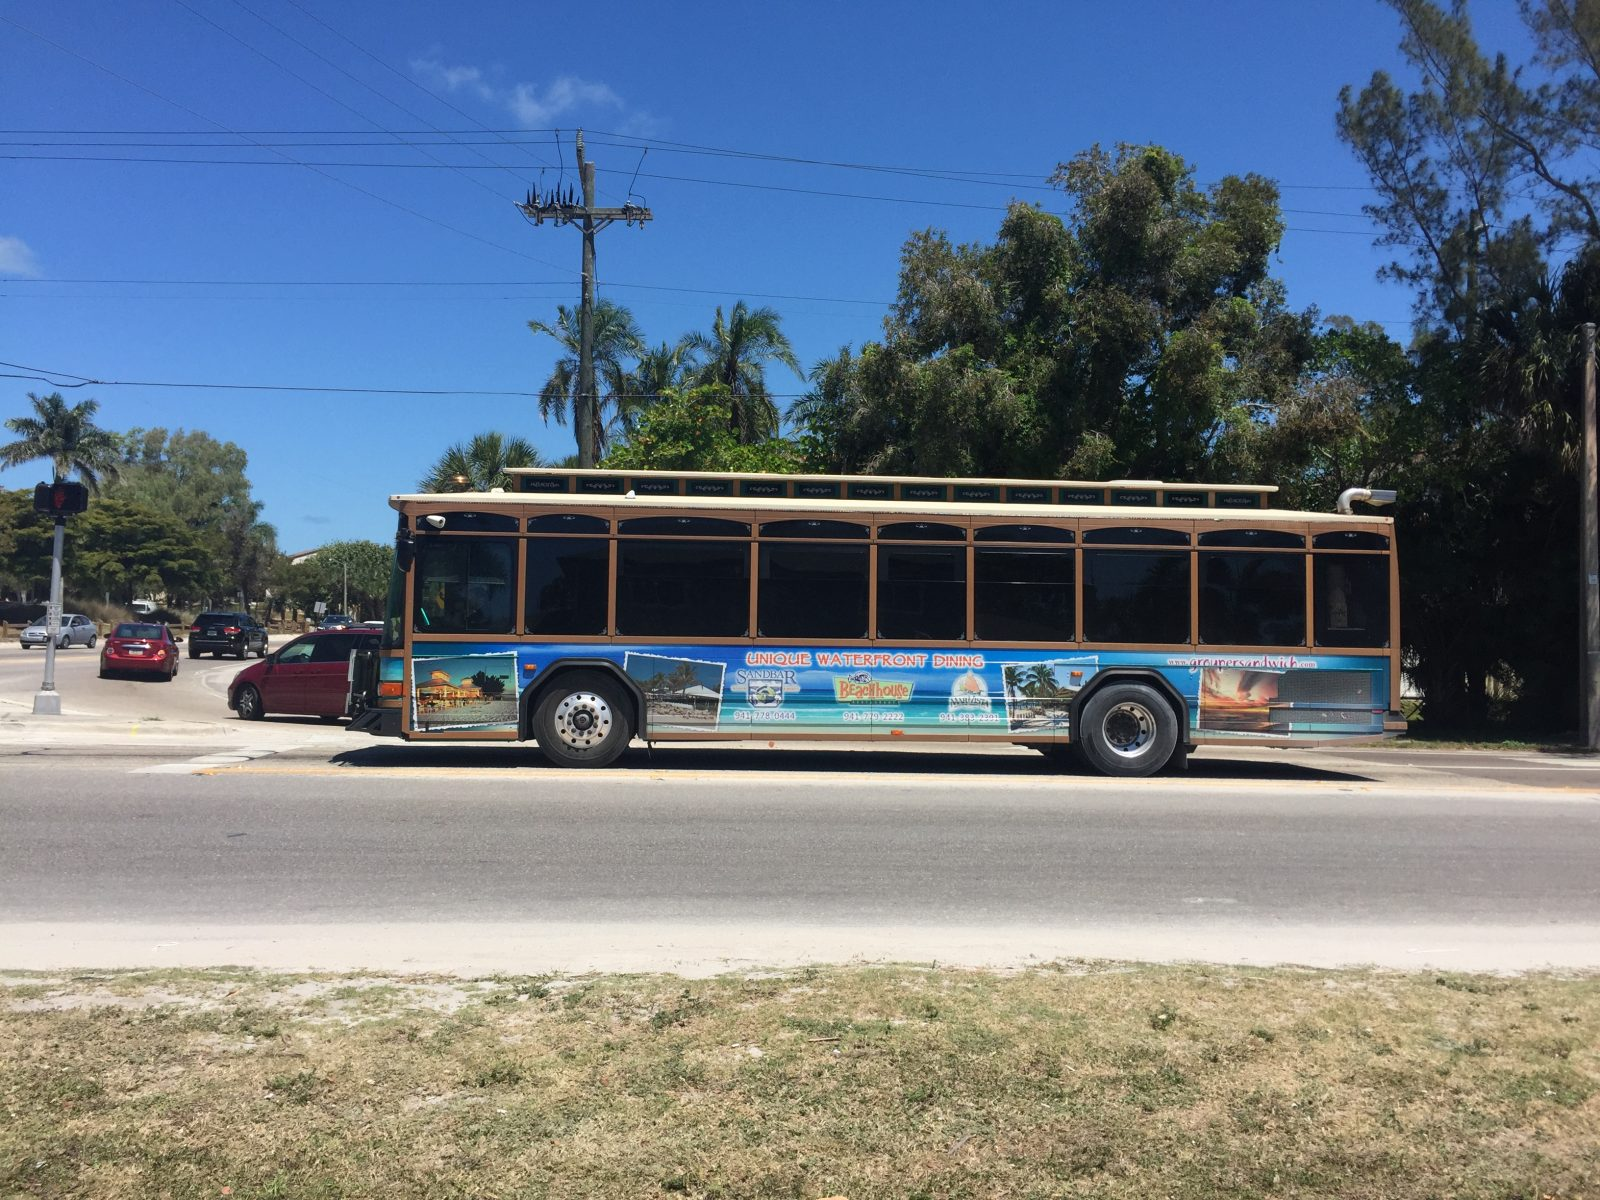 free trolley-style bus